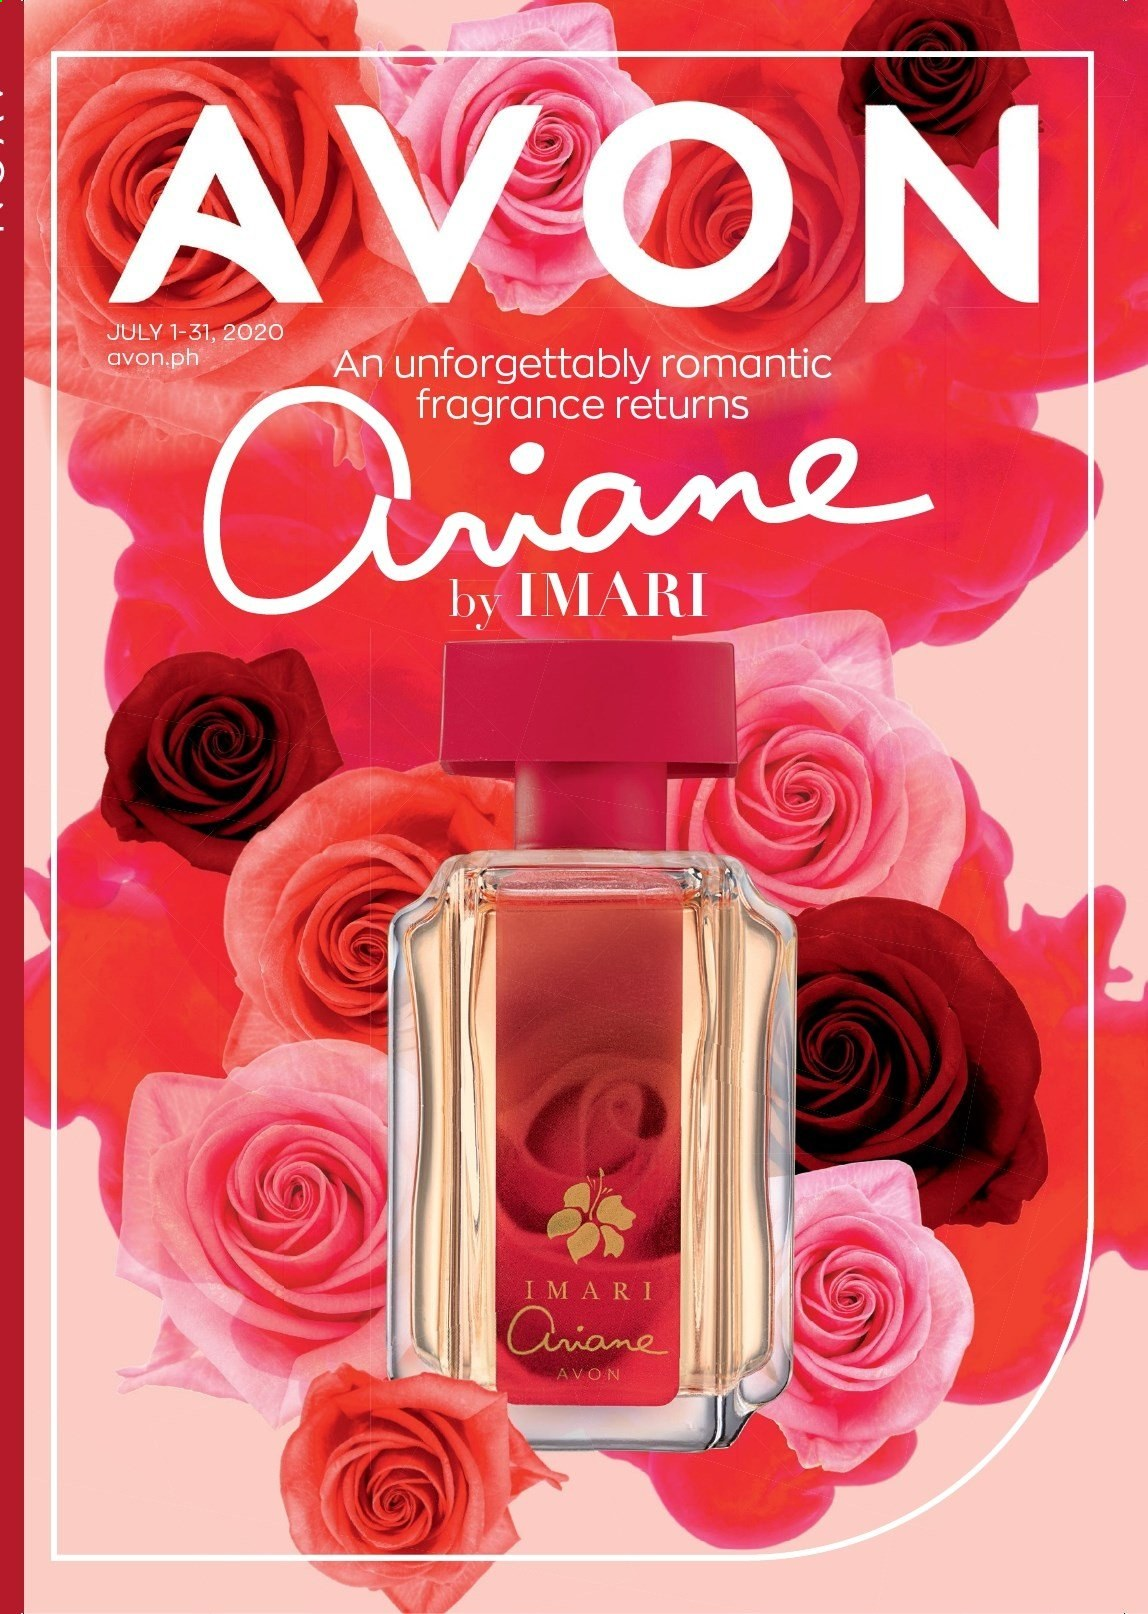 Avon offer  - 1.7.2020 - 31.7.2020 - Sales products - Avon, fragrance, Imari. Page 1.